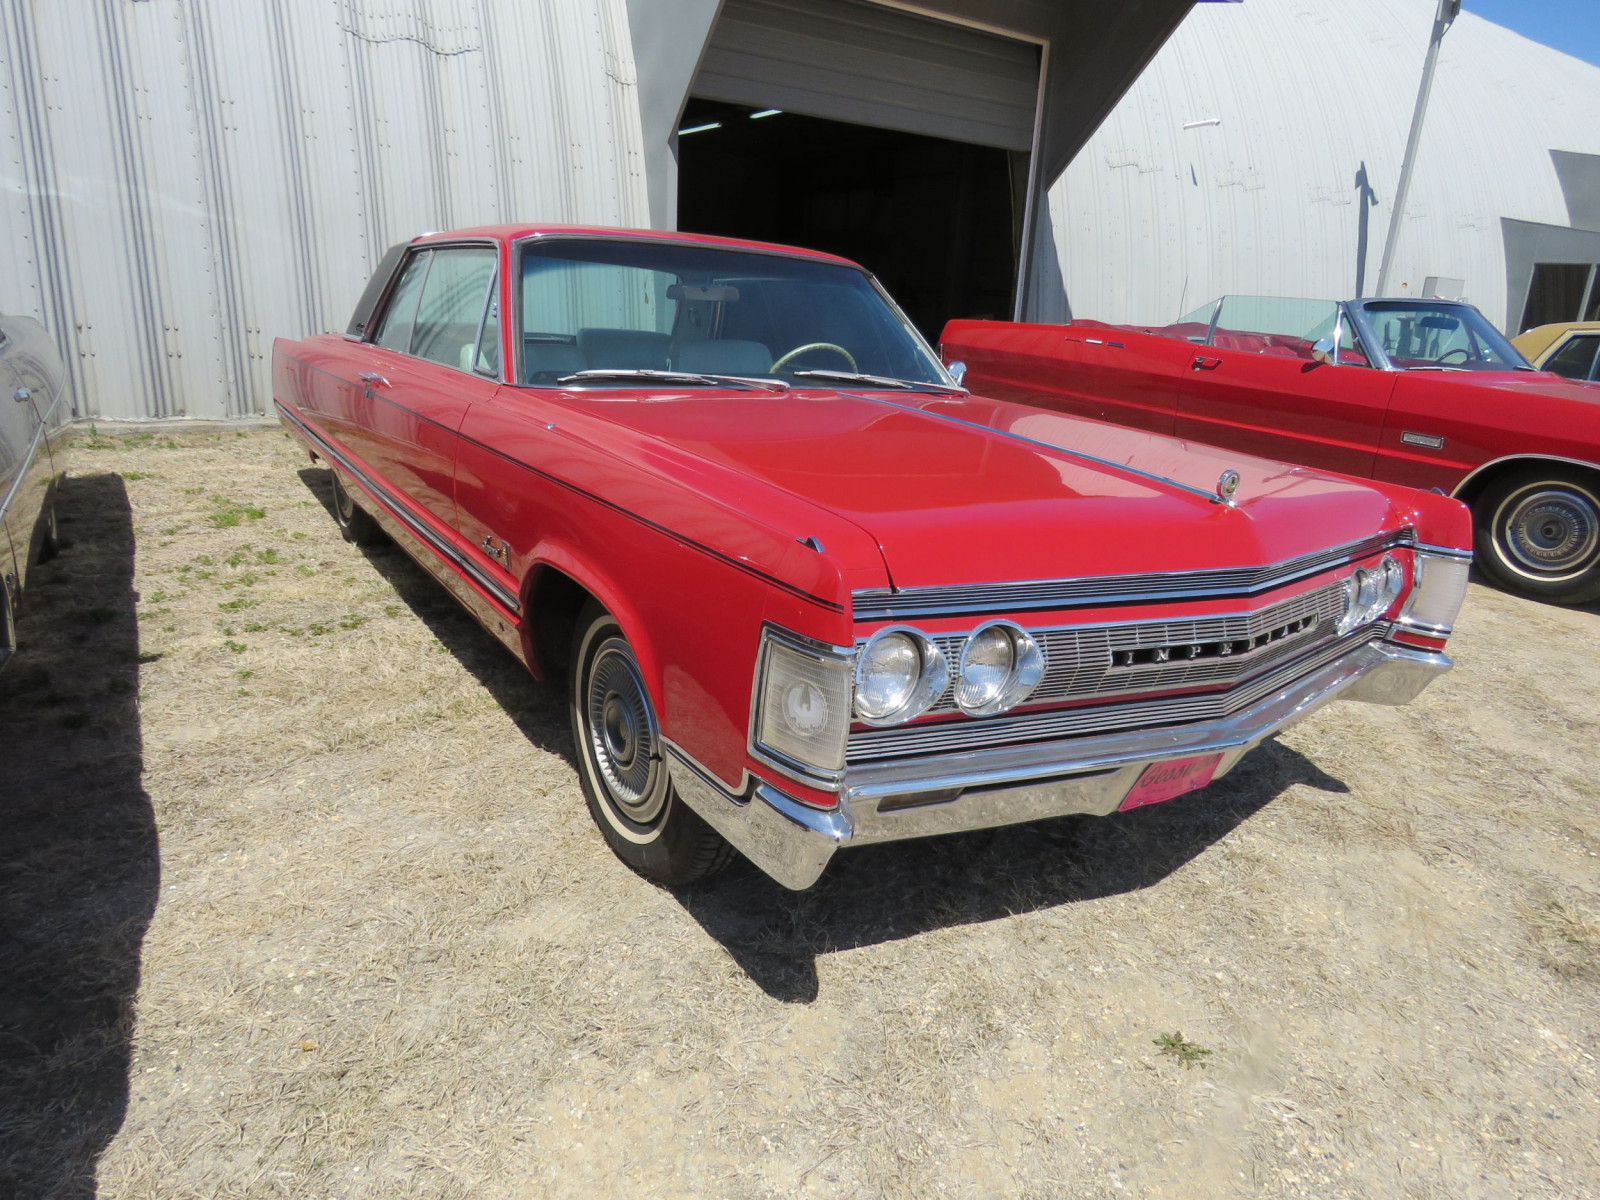 1967 Chrysler Imperial Crown Coupe - Image 3